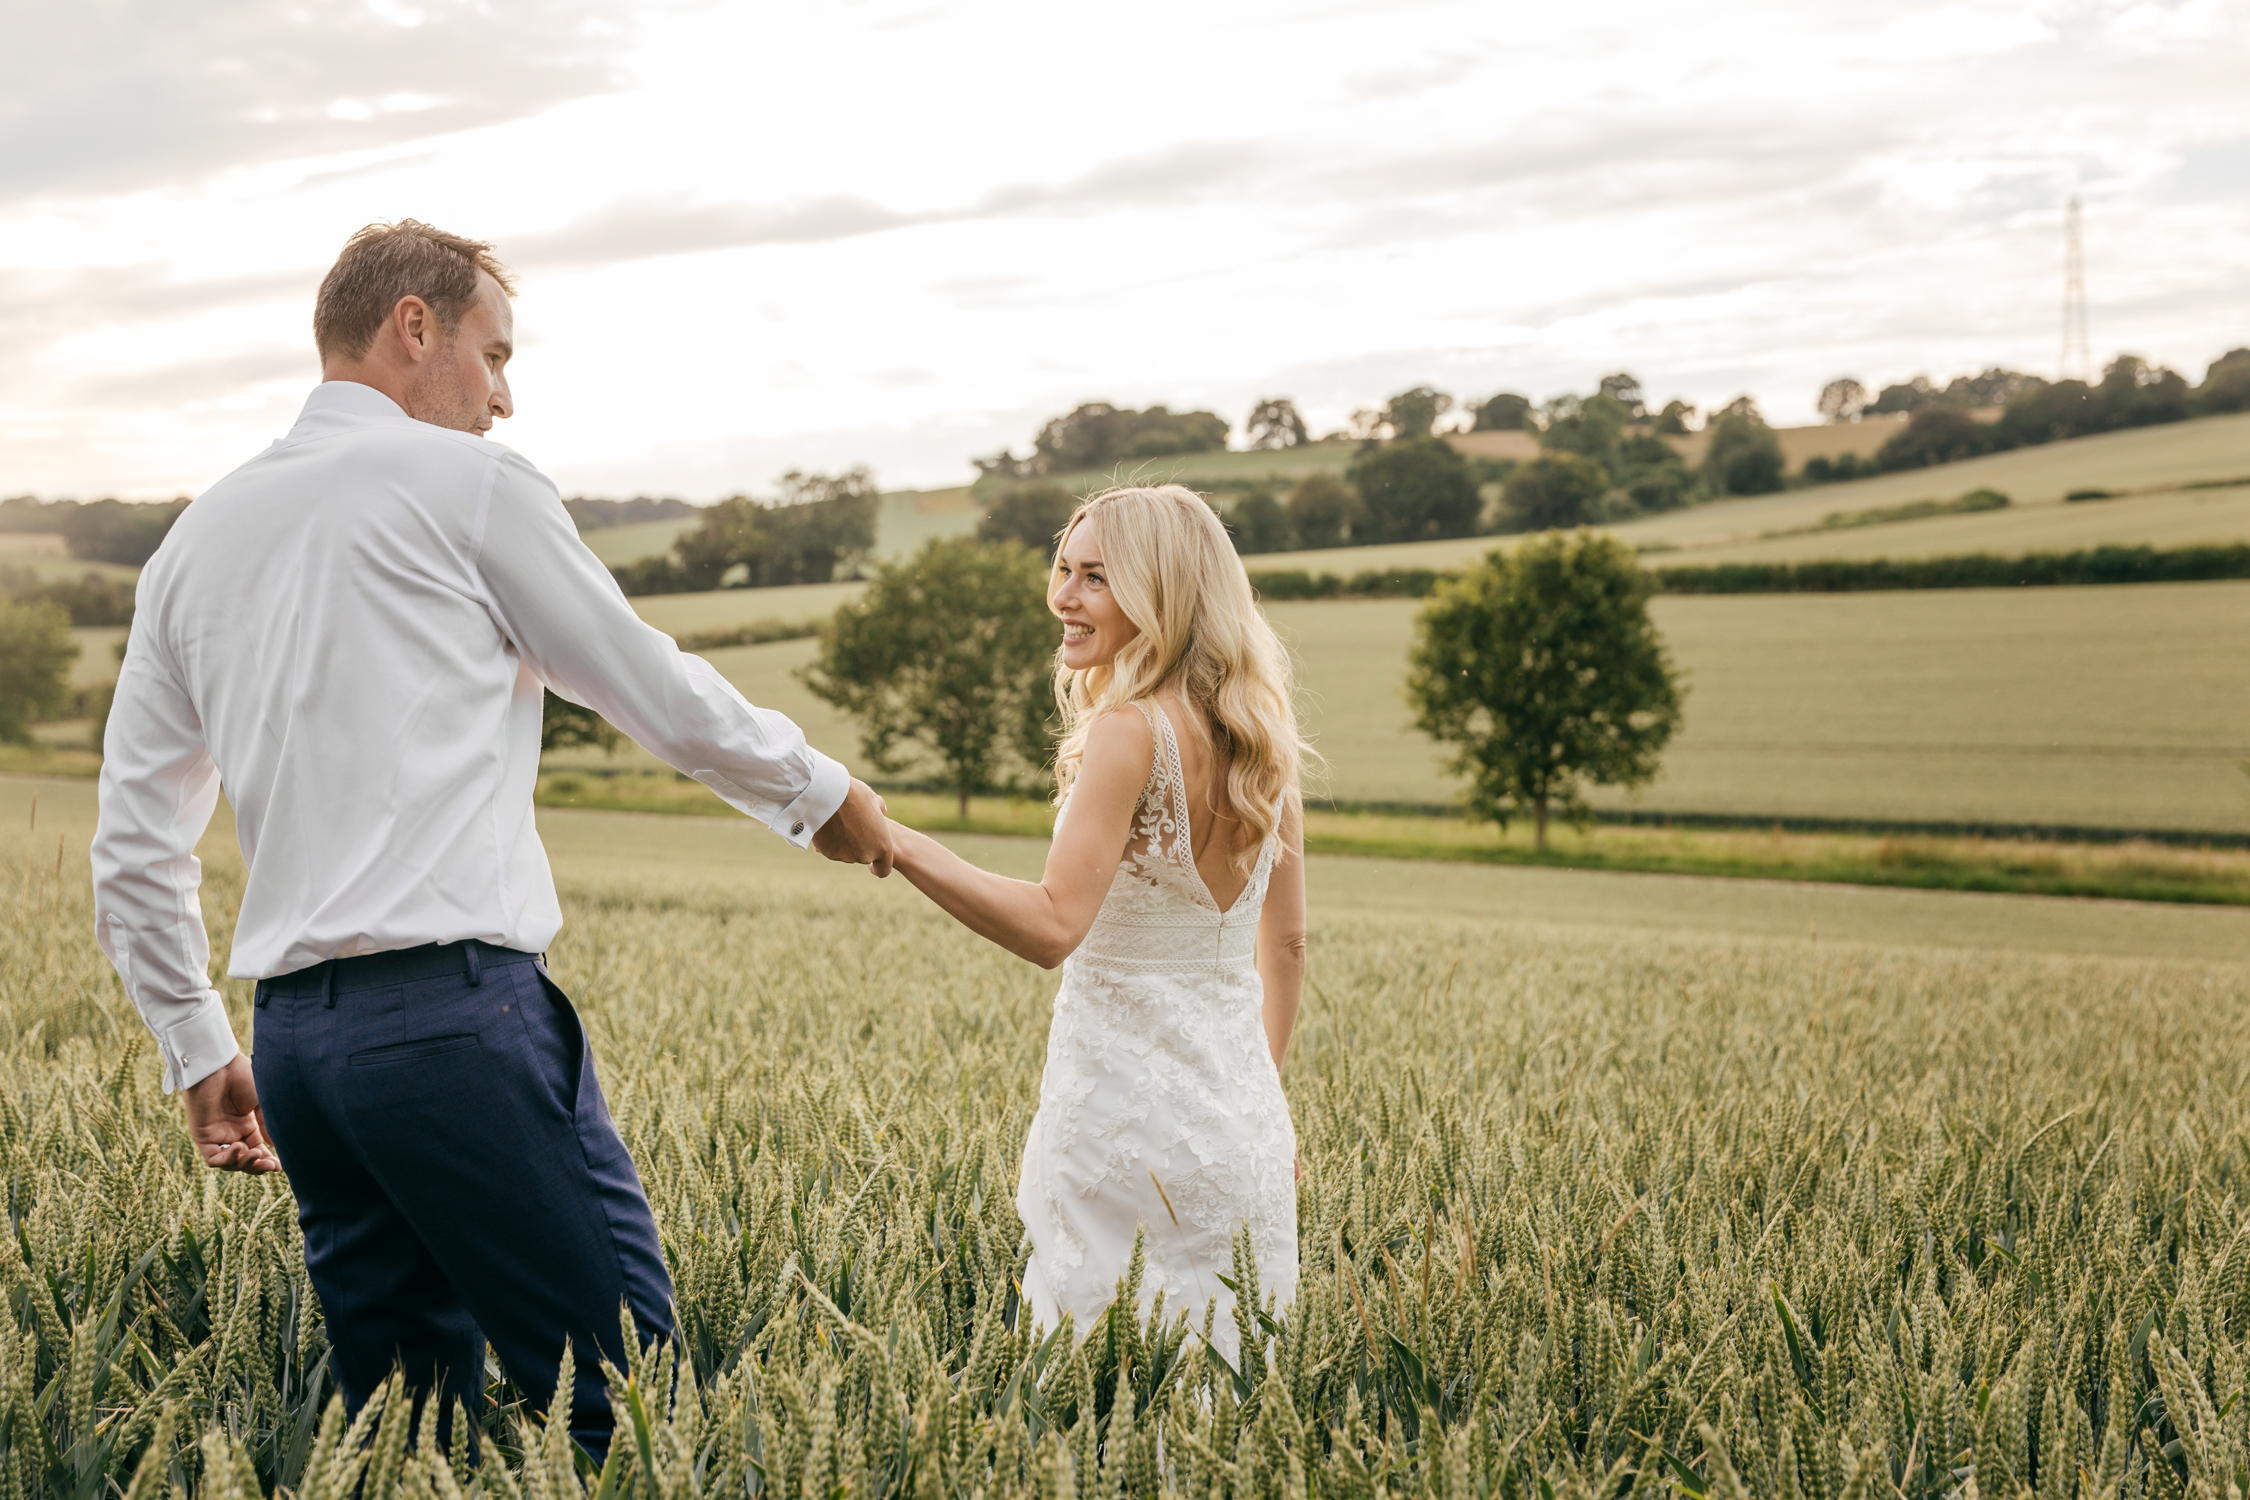 natural portrait of couple taking sunset walk through field on wedding day